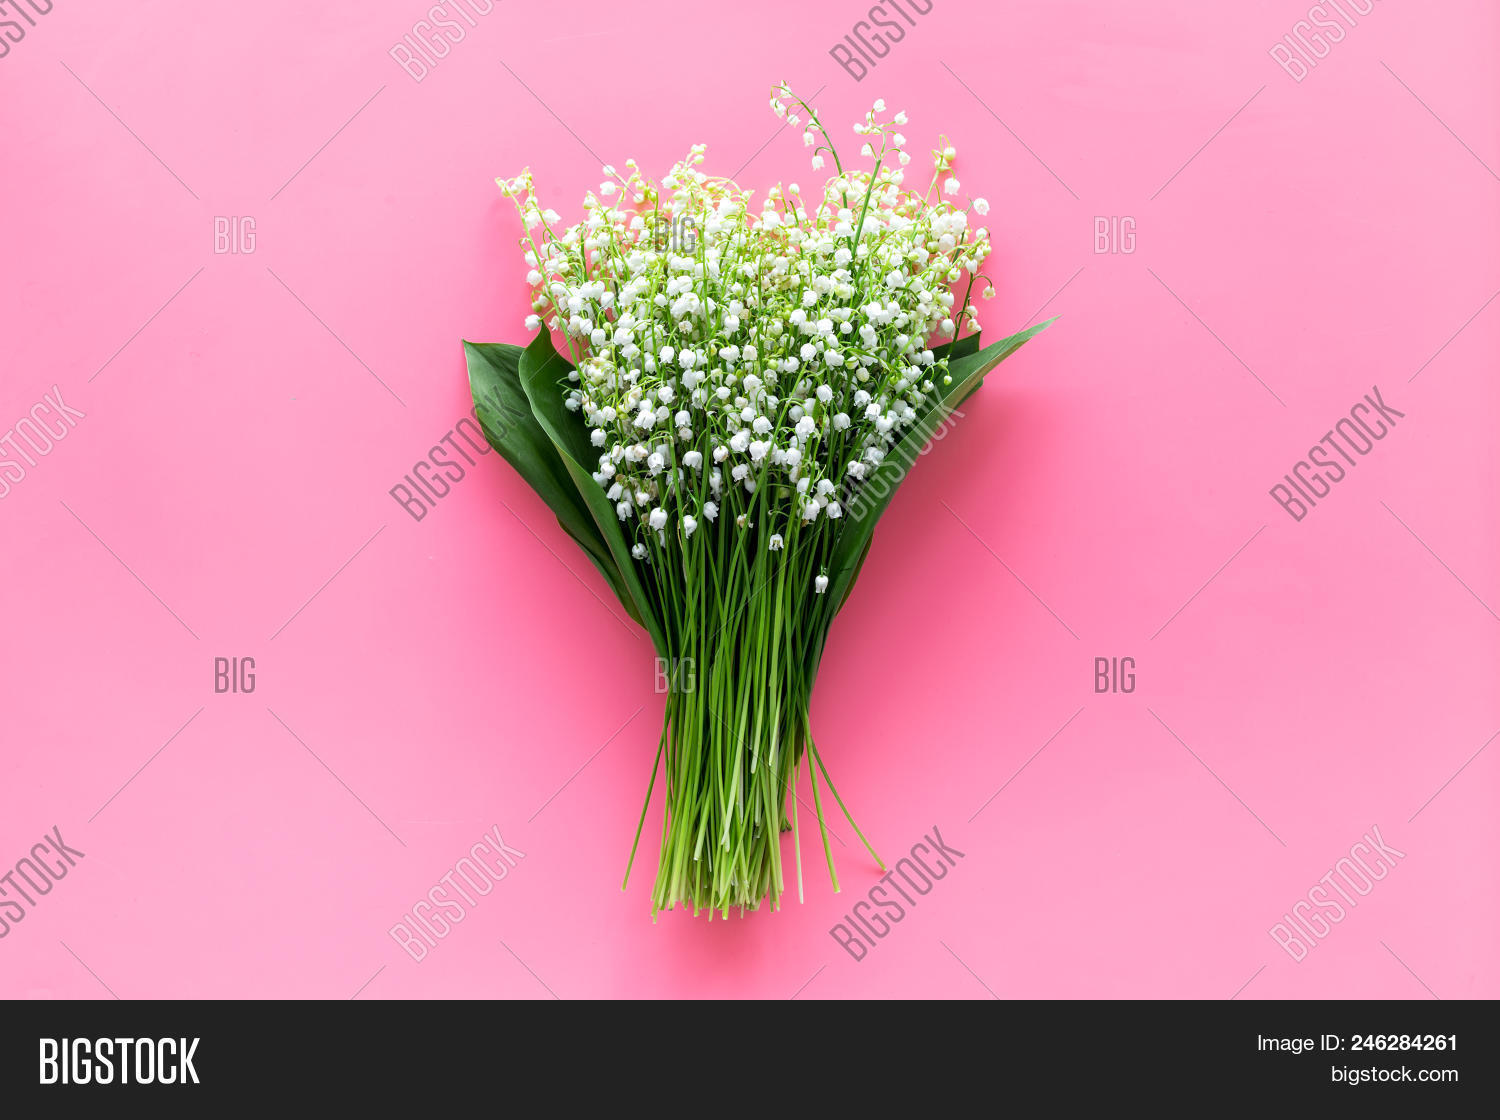 May flowers bouqet image photo free trial bigstock may flowers bouqet of lily of the valley flowers on pastel pink background top view izmirmasajfo